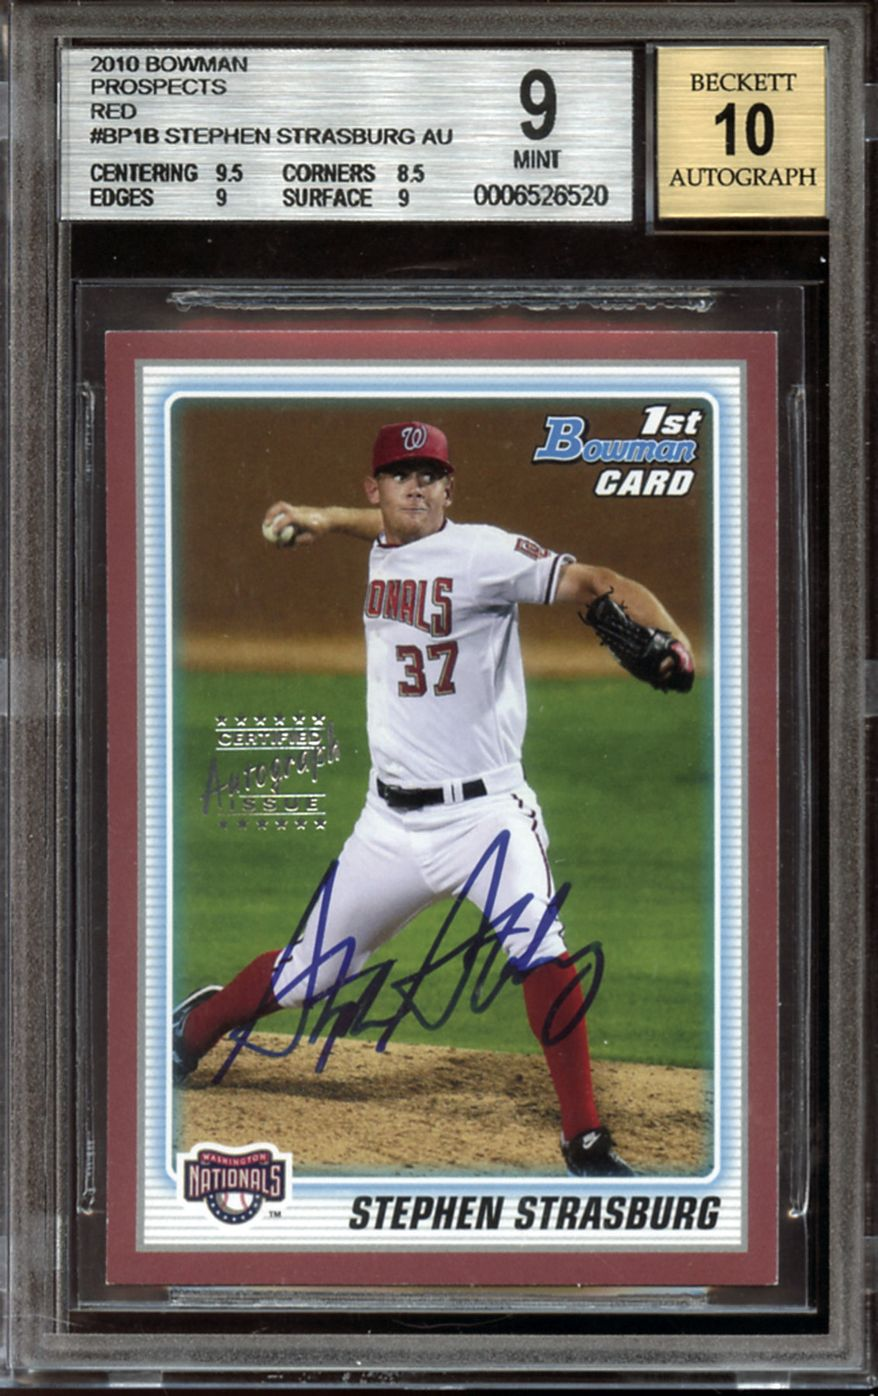 ASSOCIATED PRESS This image provided by Huggins and Scott Auctions shows a 2010 Bowman Prospects rookie baseball card for Washington Nationals pitcher Stephen Strasburg that will be up for bid in a two-week online auction beginning Wednesday, July 14, 2010, through Huggins and Scott, a sports memorabilia auction house in Silver Spring, Md.